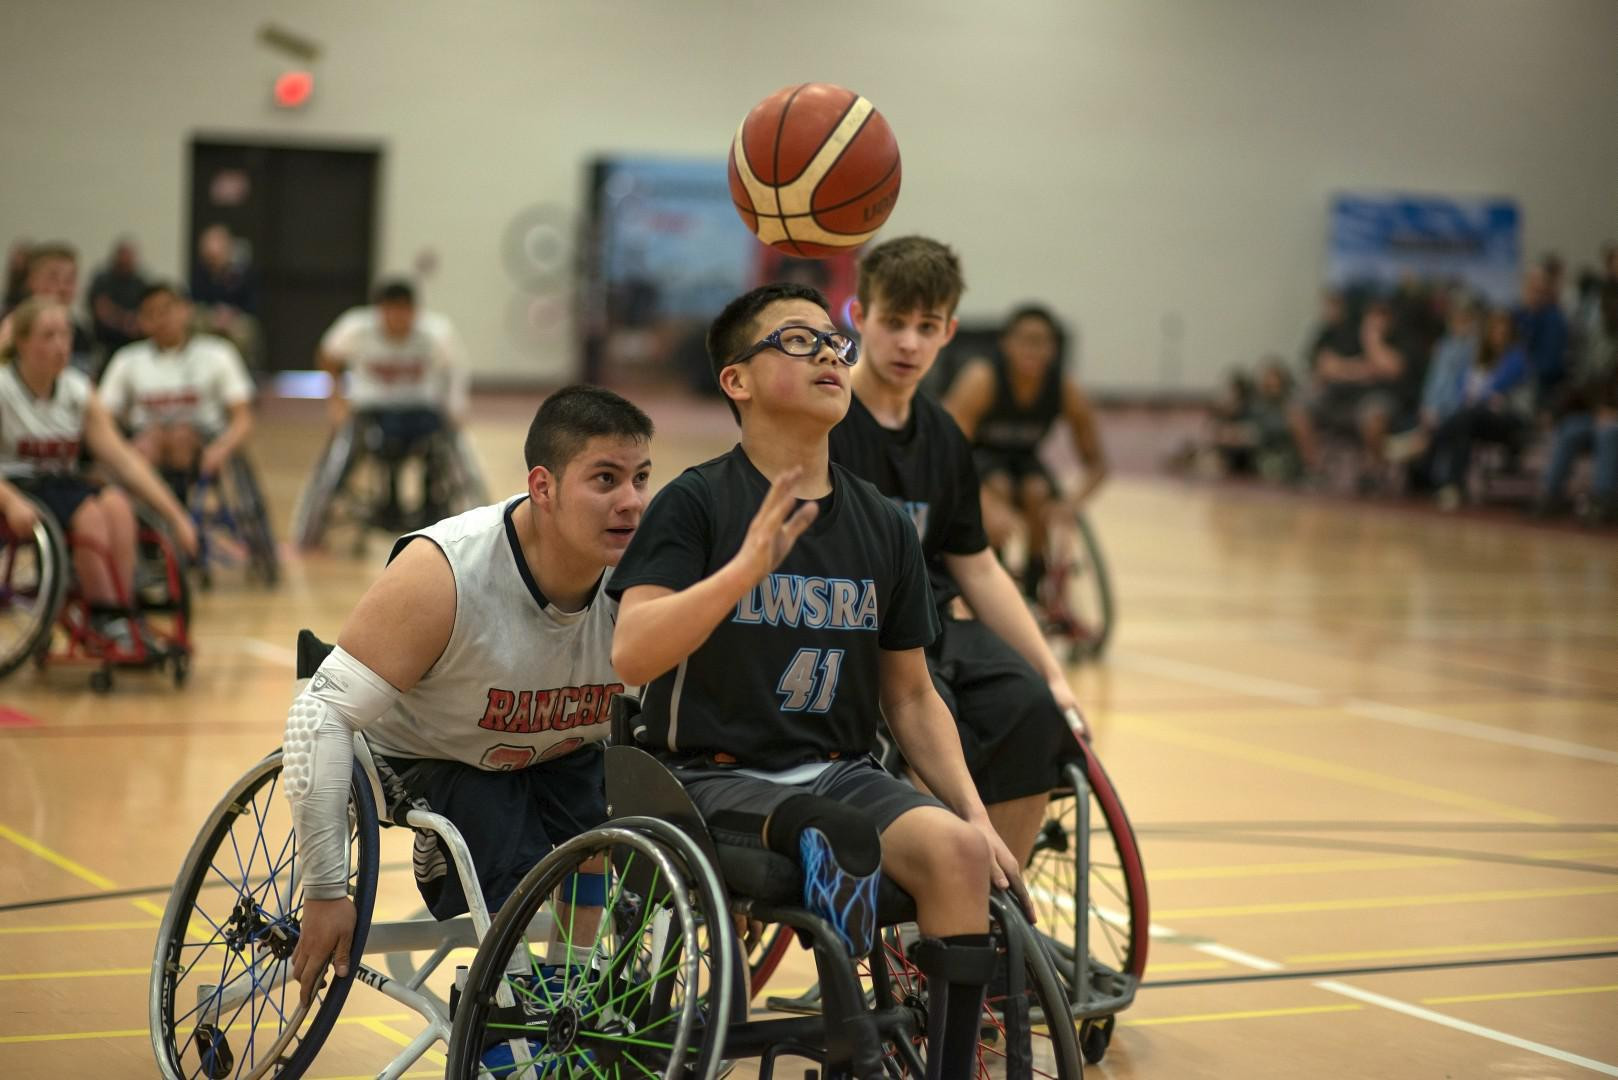 The NWBA is the governing body for wheelchair basketball in the United States ©NWBA